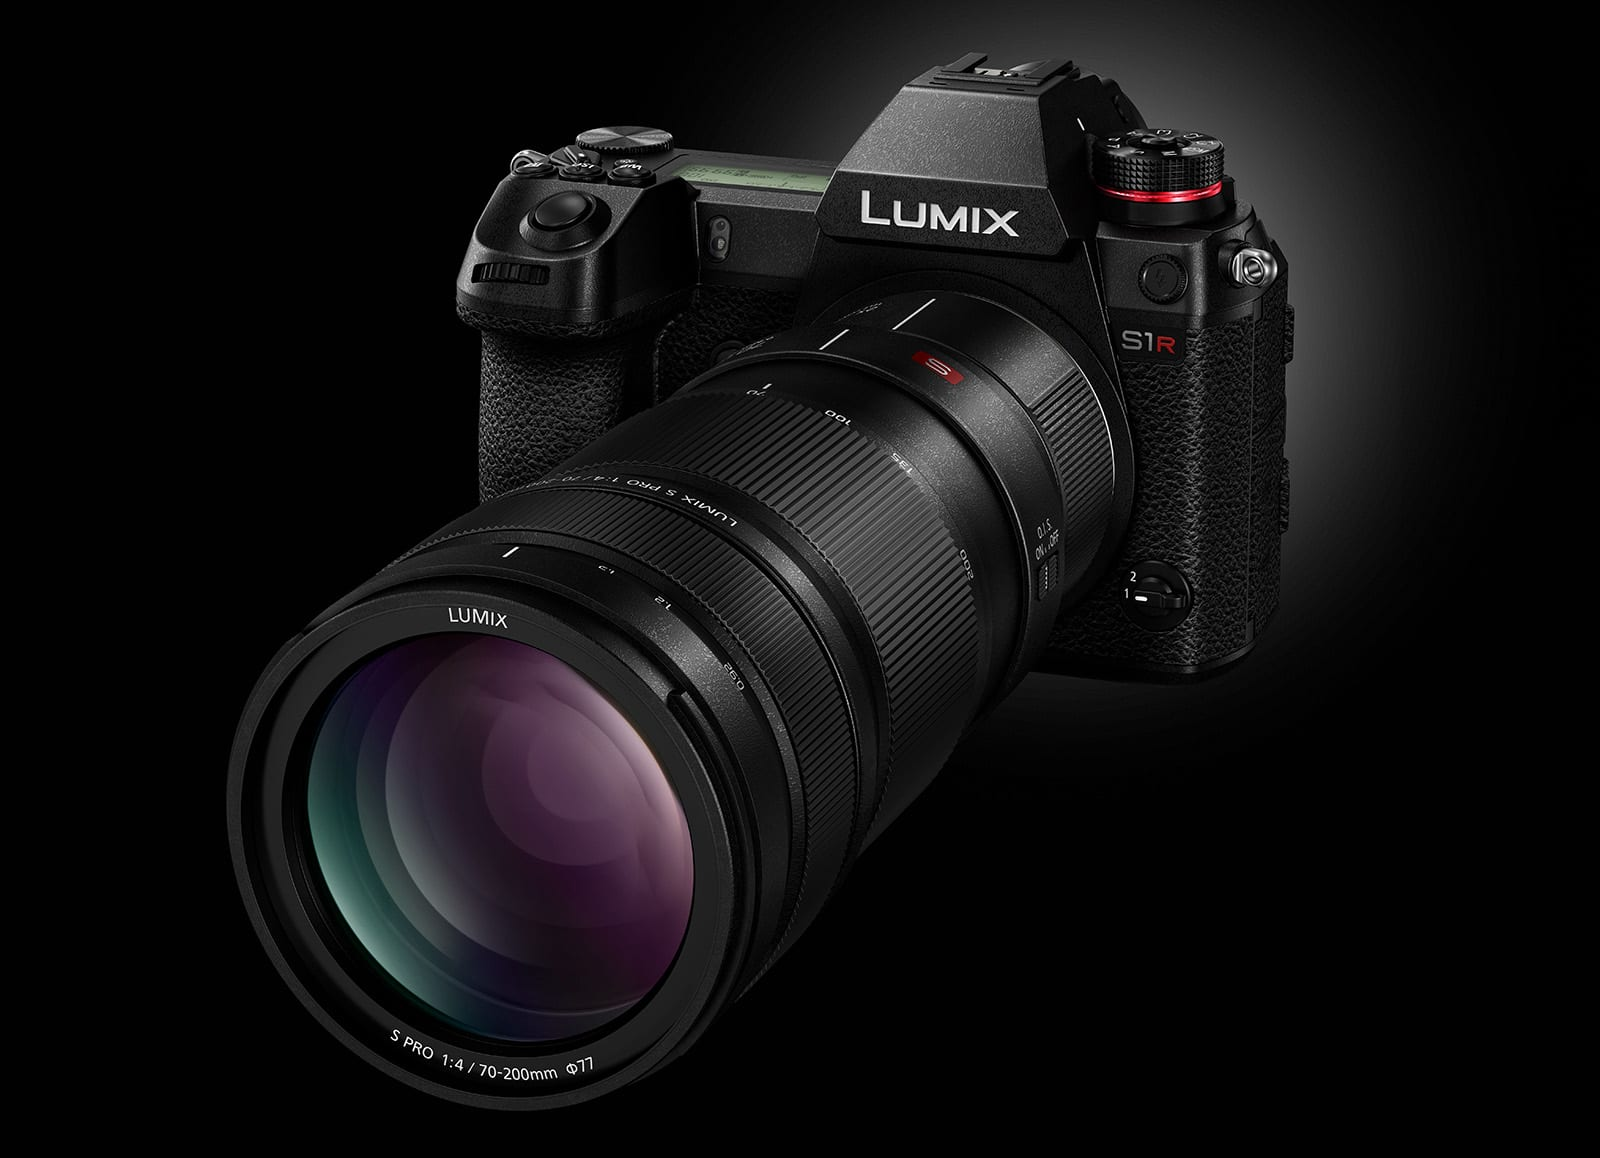 Panasonic's cinema-centric S1H mirrorless camera can shoot